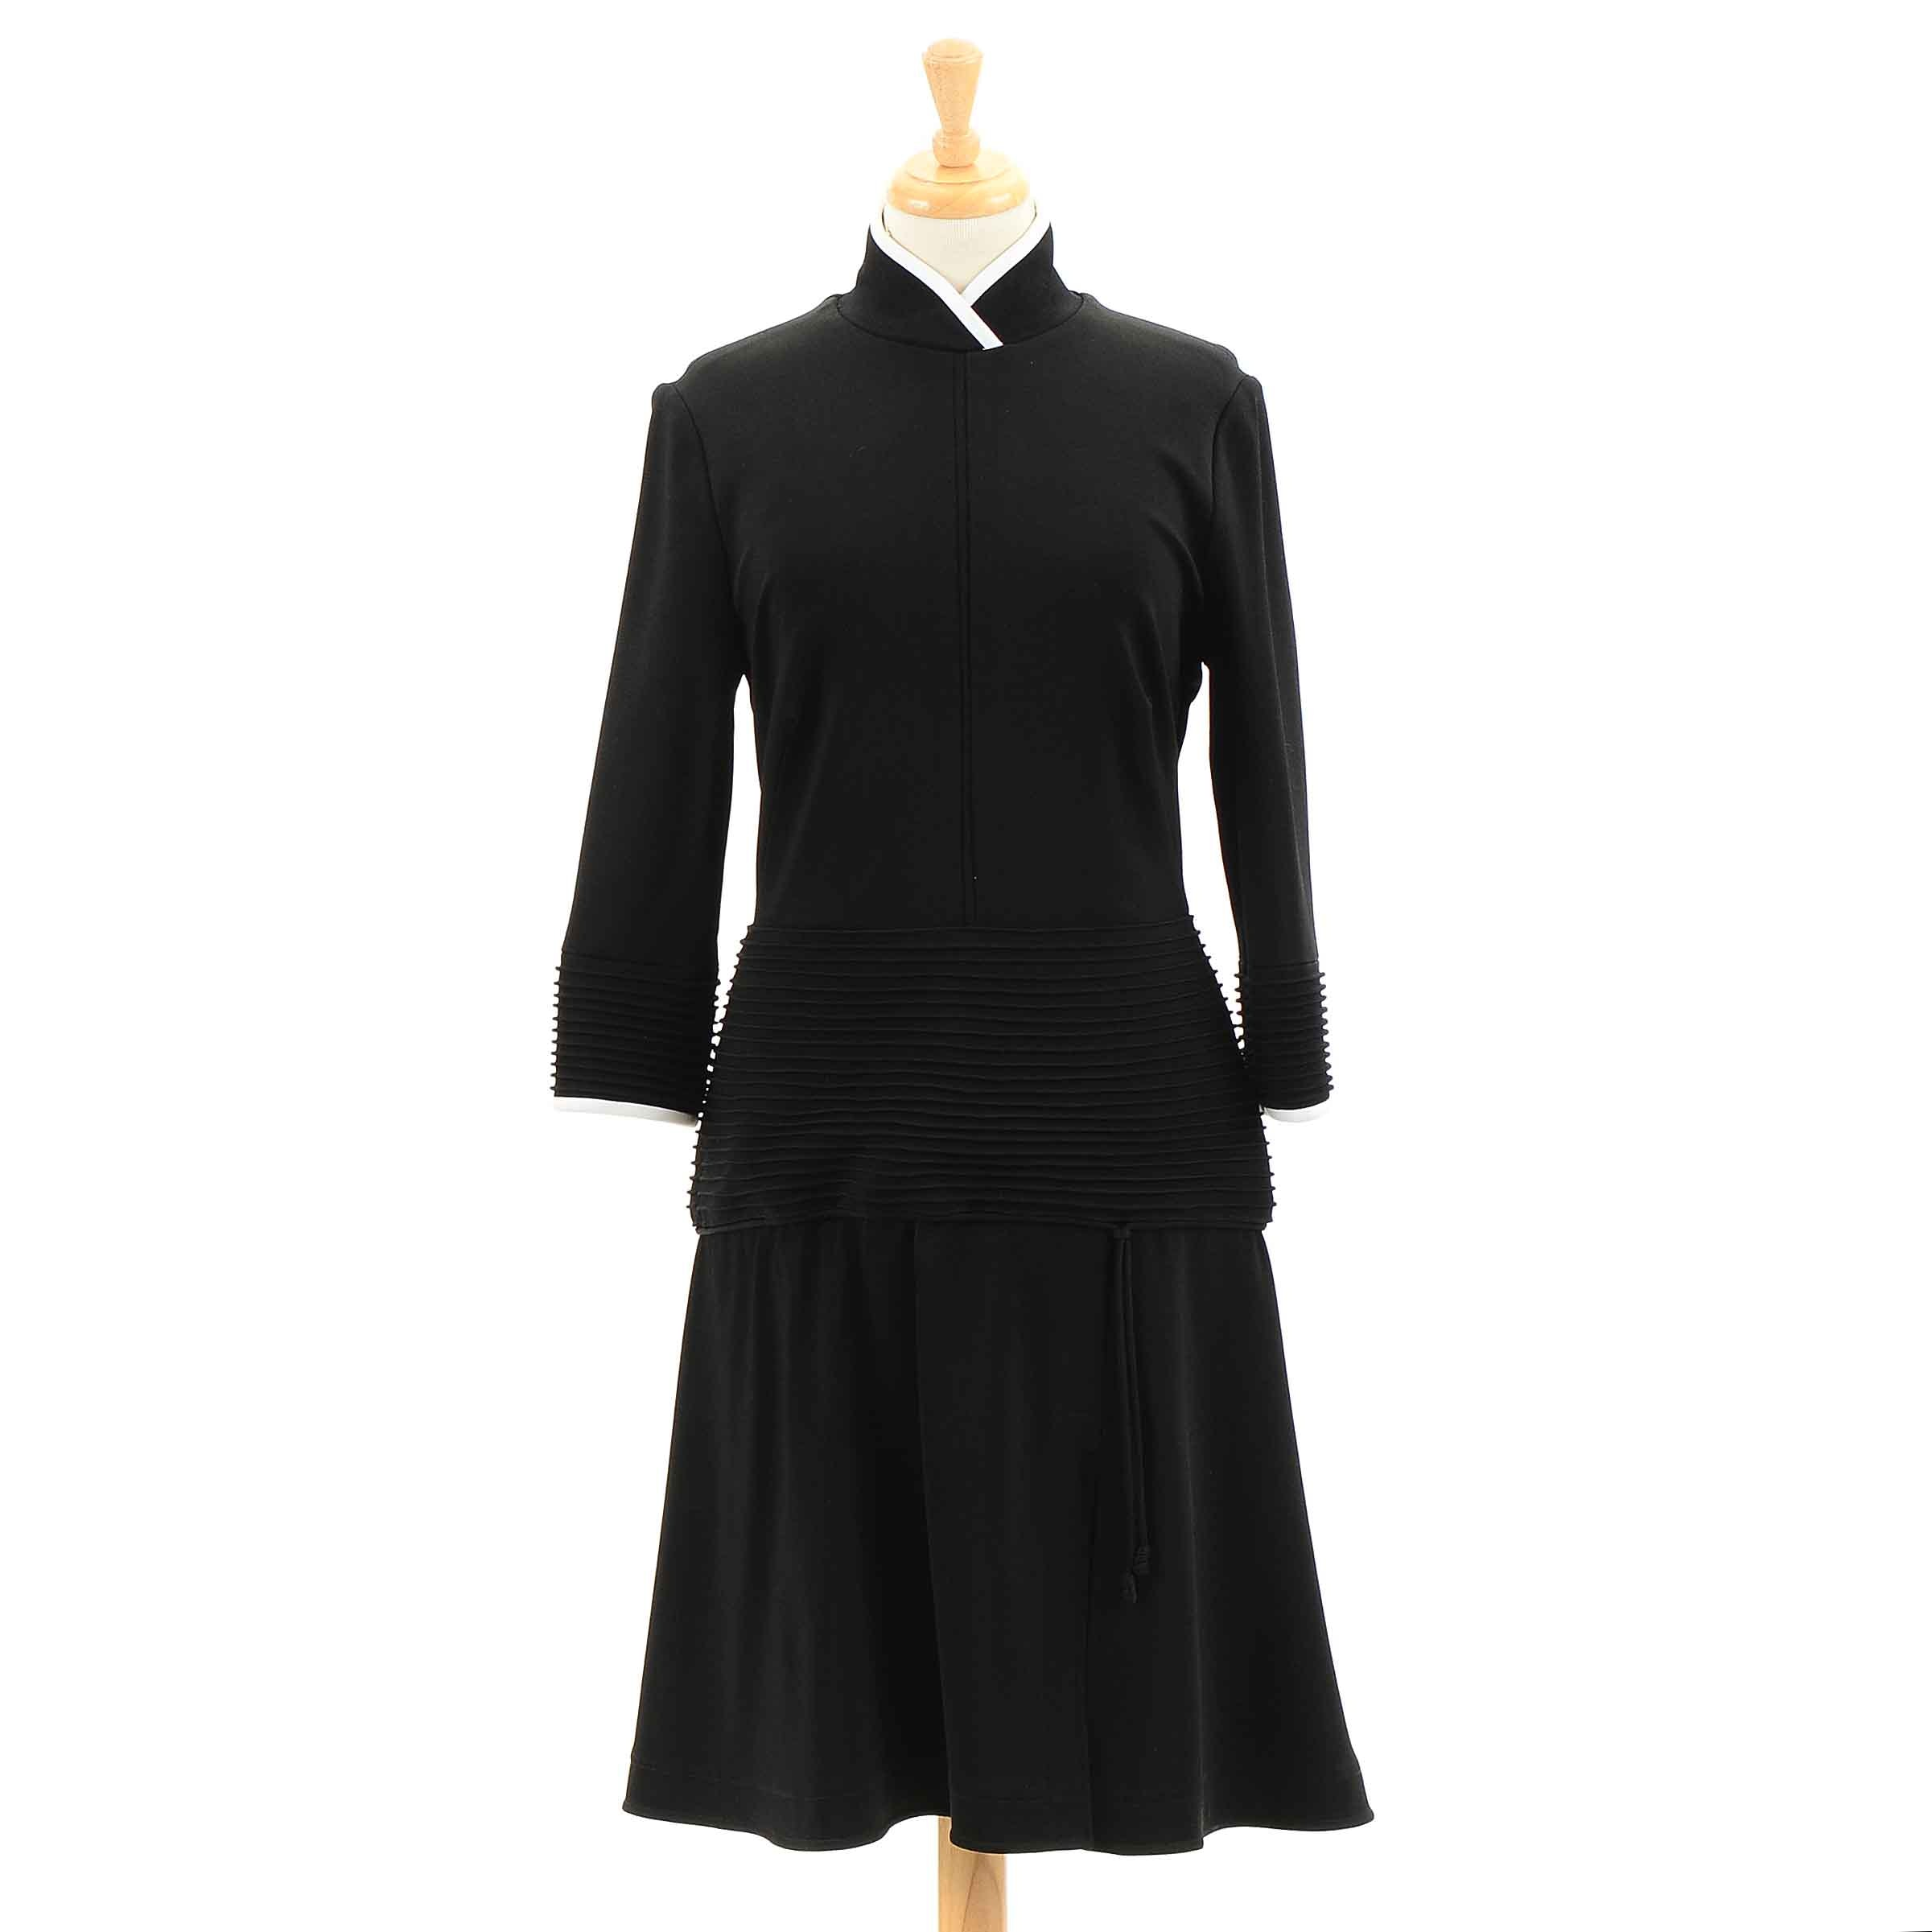 Women's Ralph Rucci Chado Black Dress